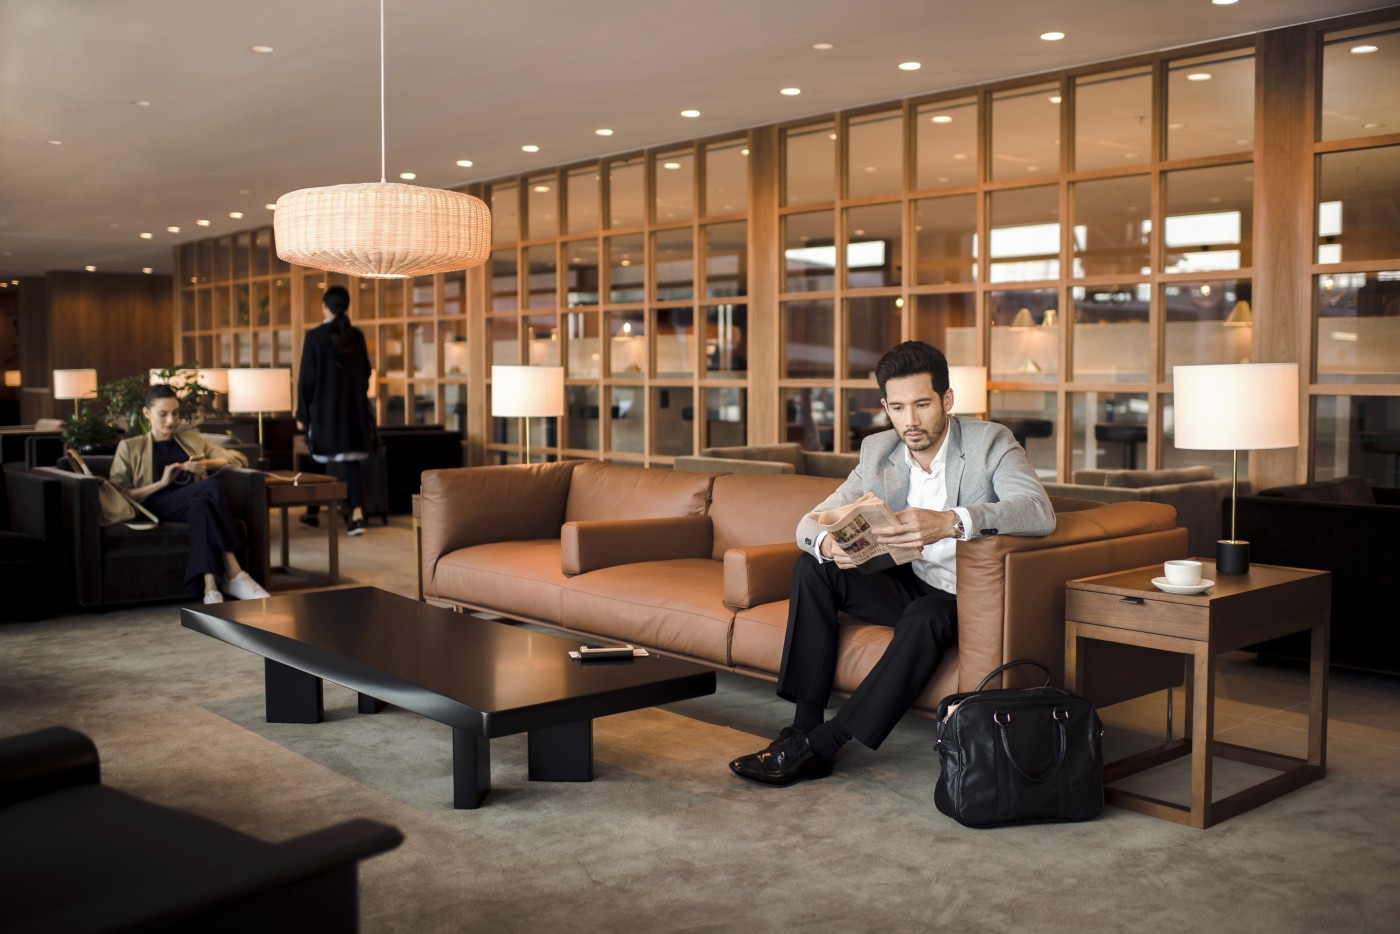 Cathay Pacific\'s The Pier Business Class Lounge: An Inside Look ...